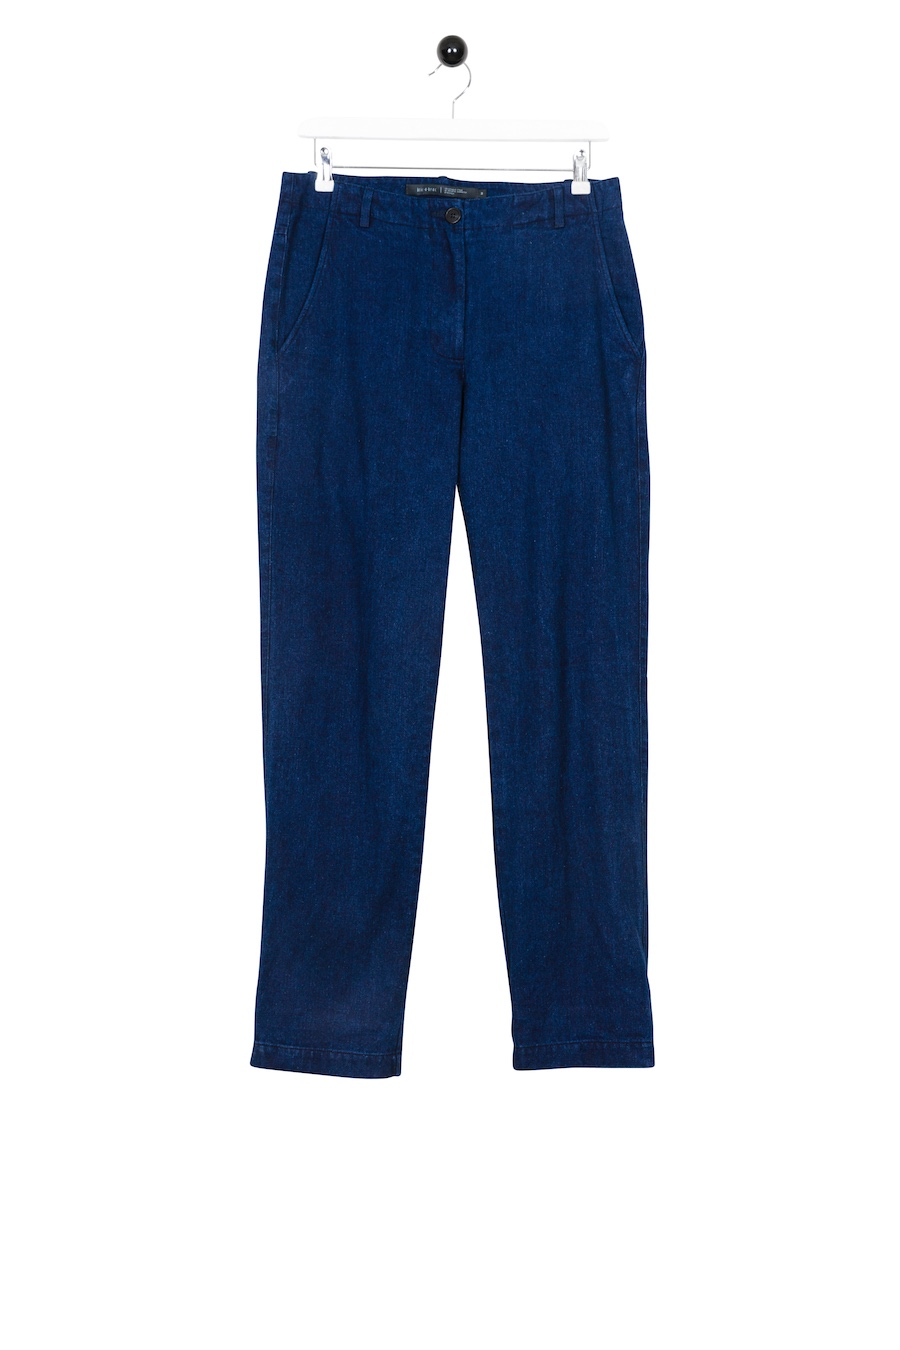 Kobolt Trousers